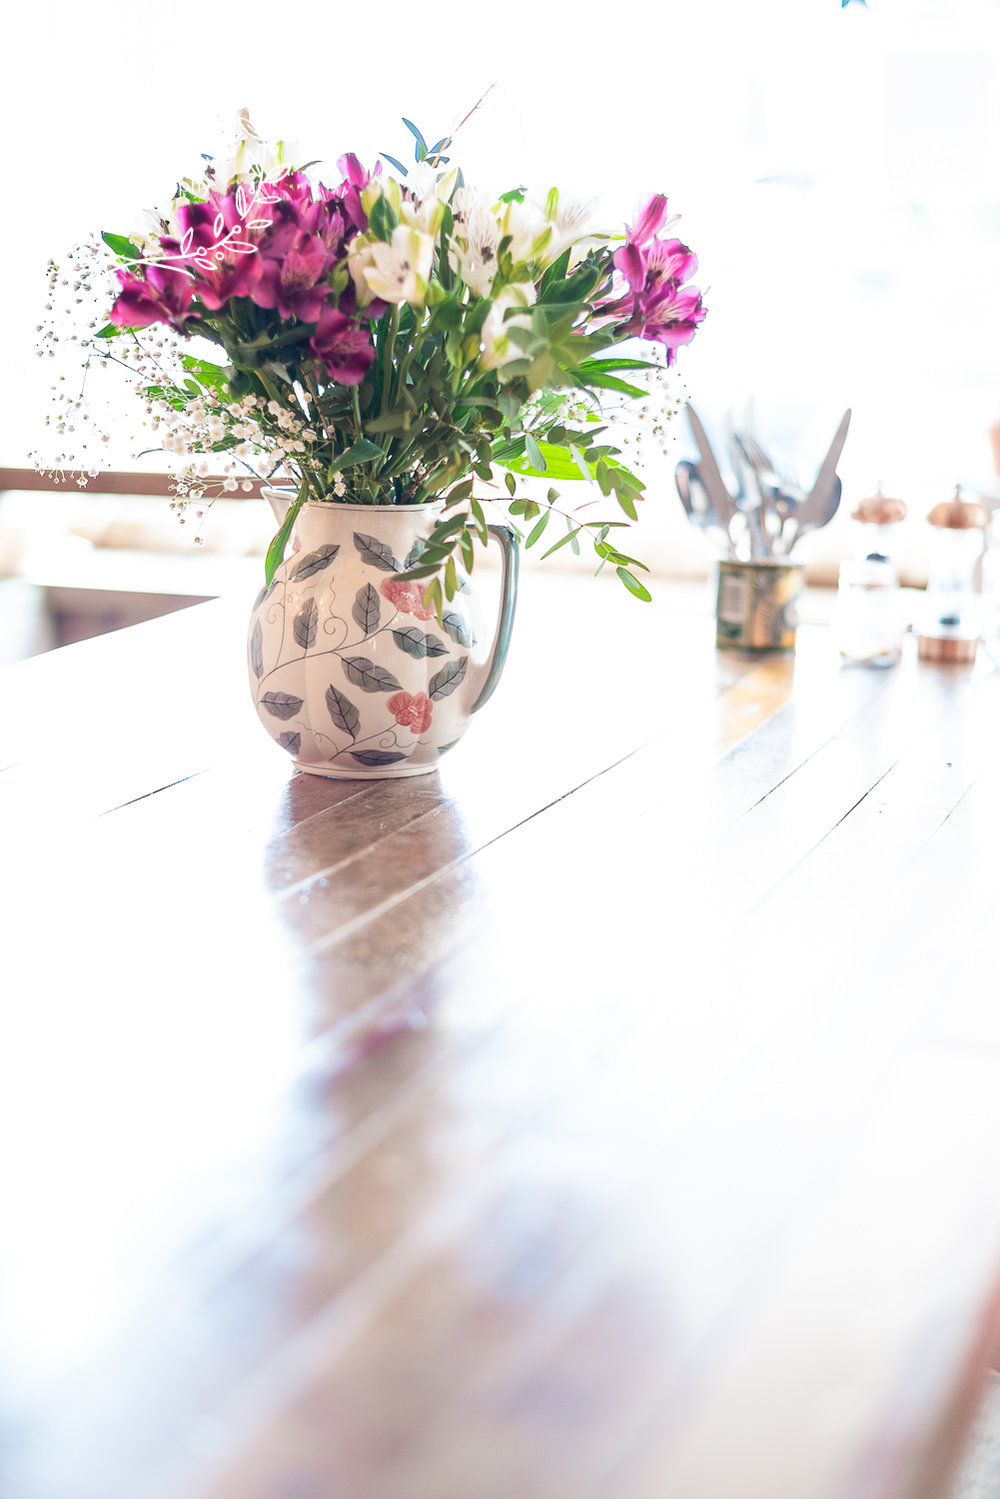 Lizzy_Biggs_Photography_reflection_of_flower_jub_on_table